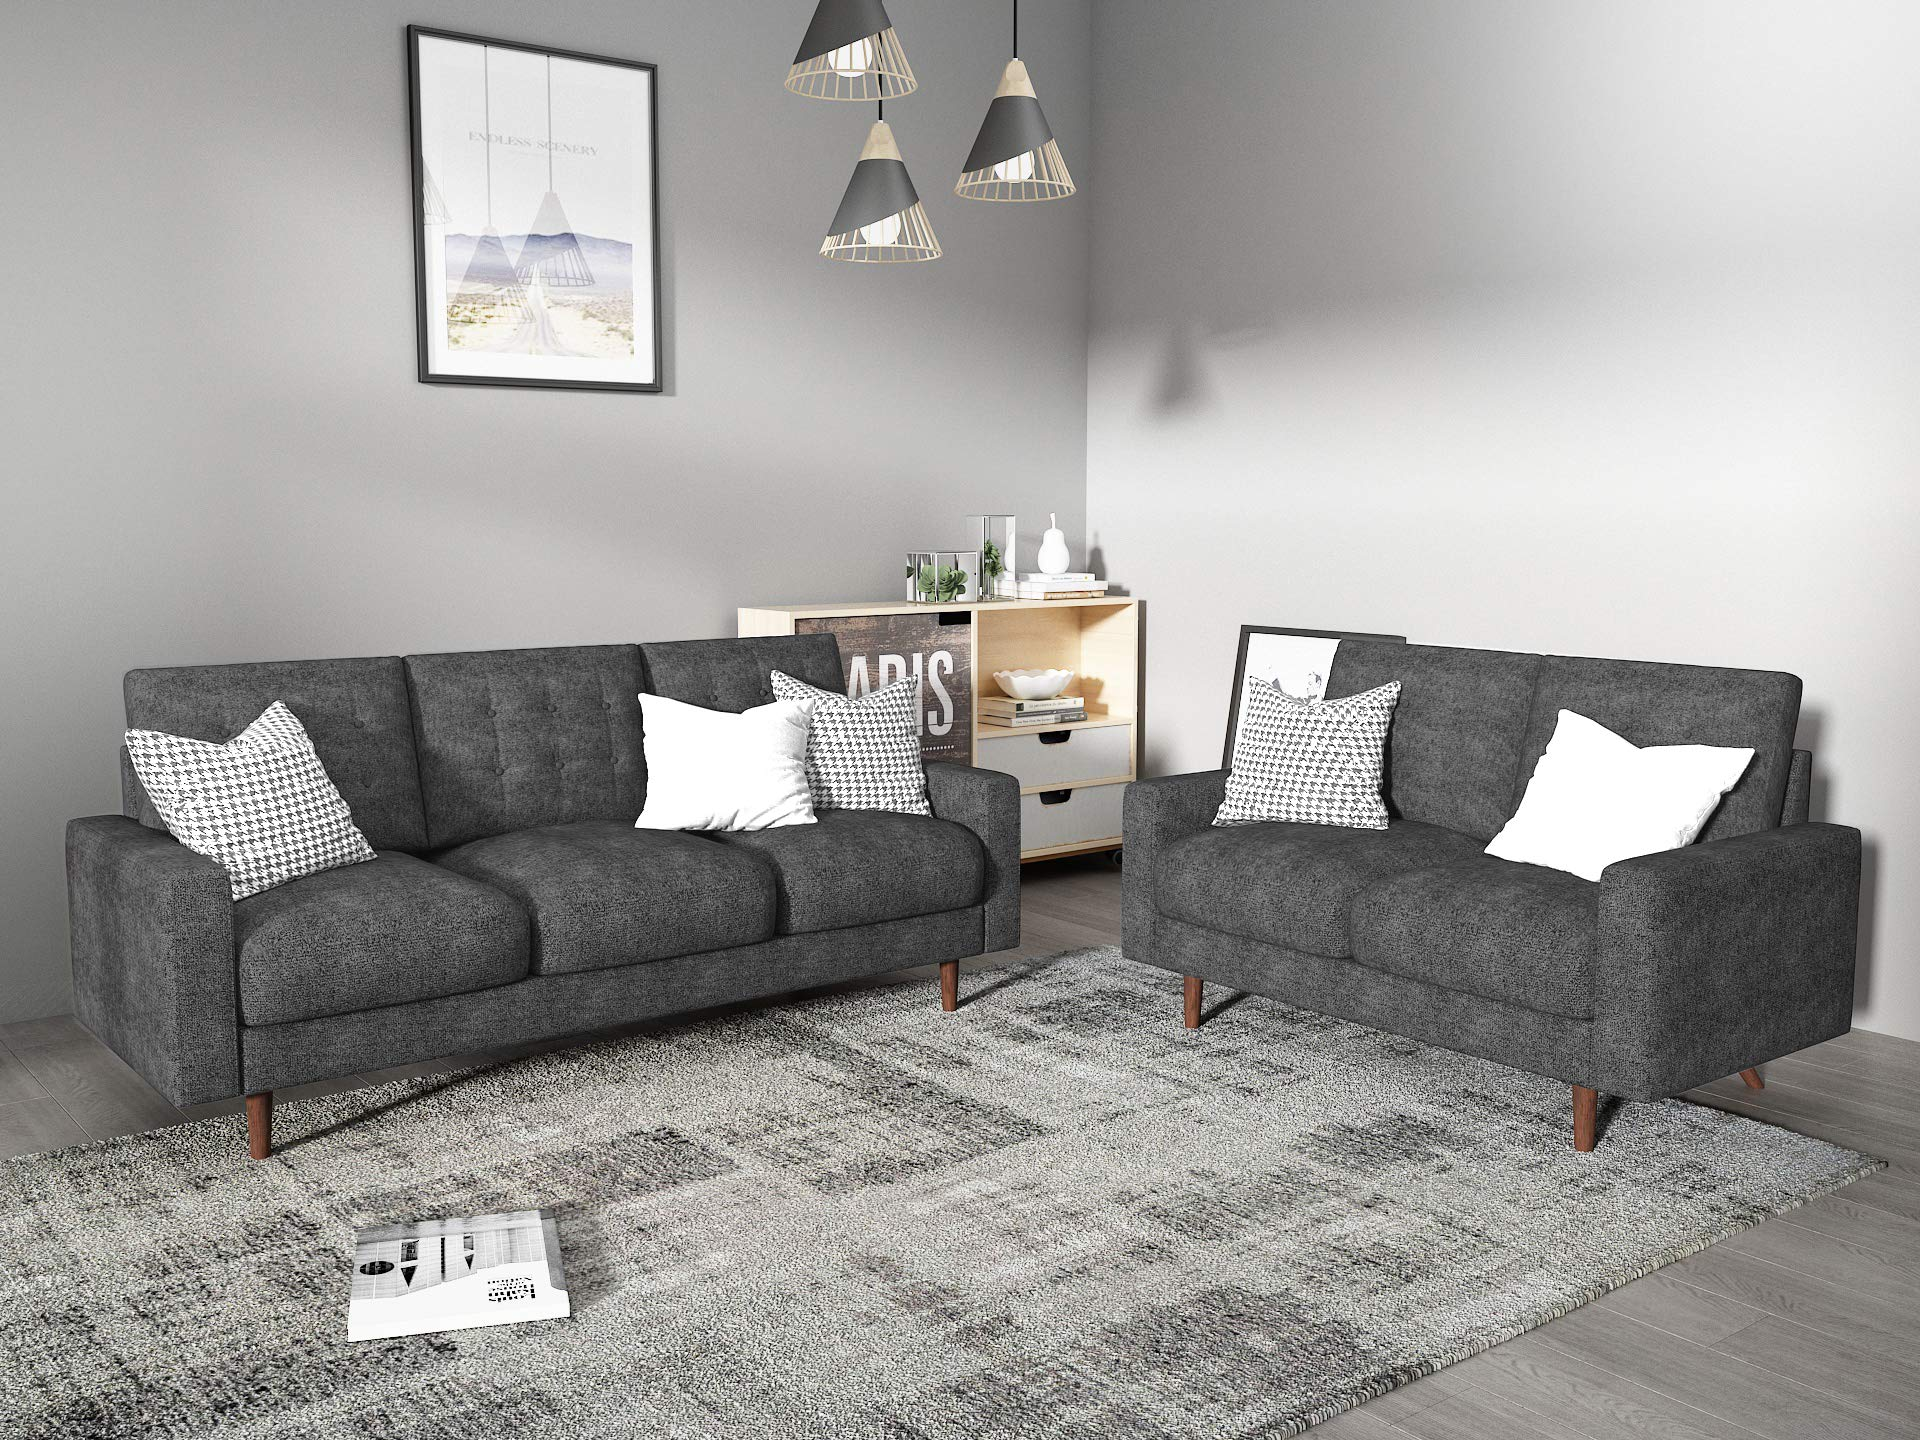 Container Furniture Direct Modern Tufted Velvet Living Room Sofa Set, 2 Piece, Gray by Container Furniture Direct